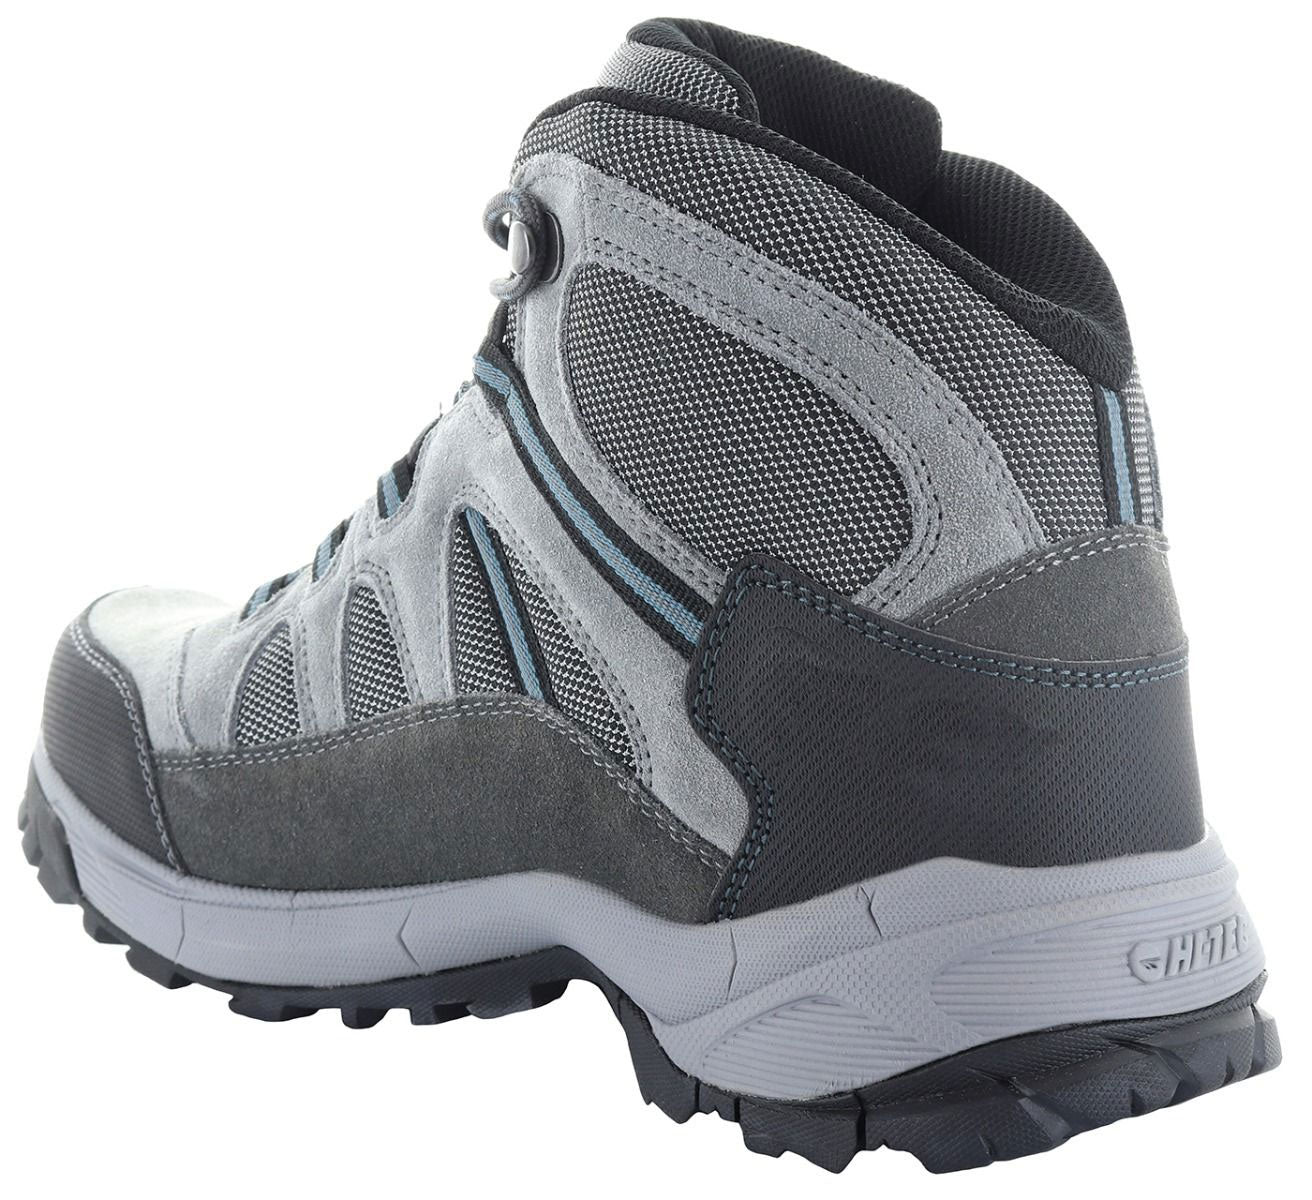 Achilles support nylon and suede hiking boots